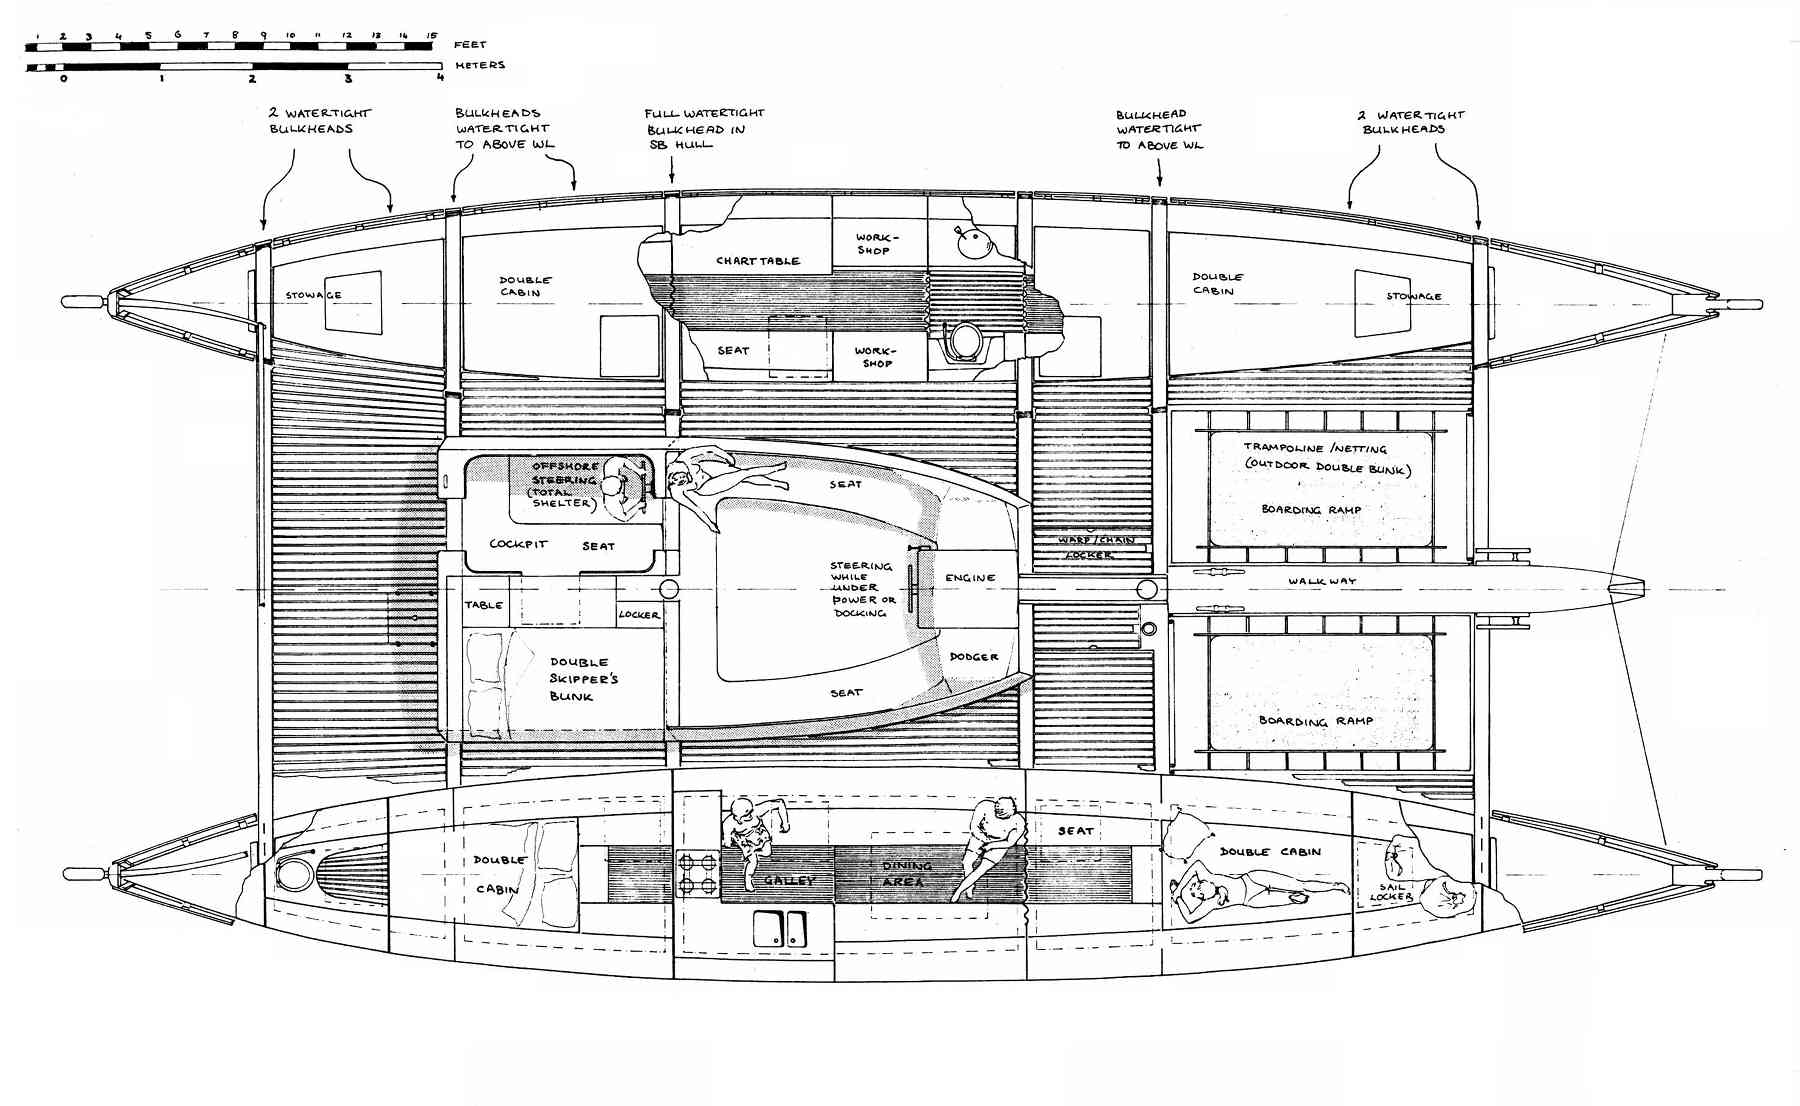 Islander 55 - Ocean cruising layout drawing